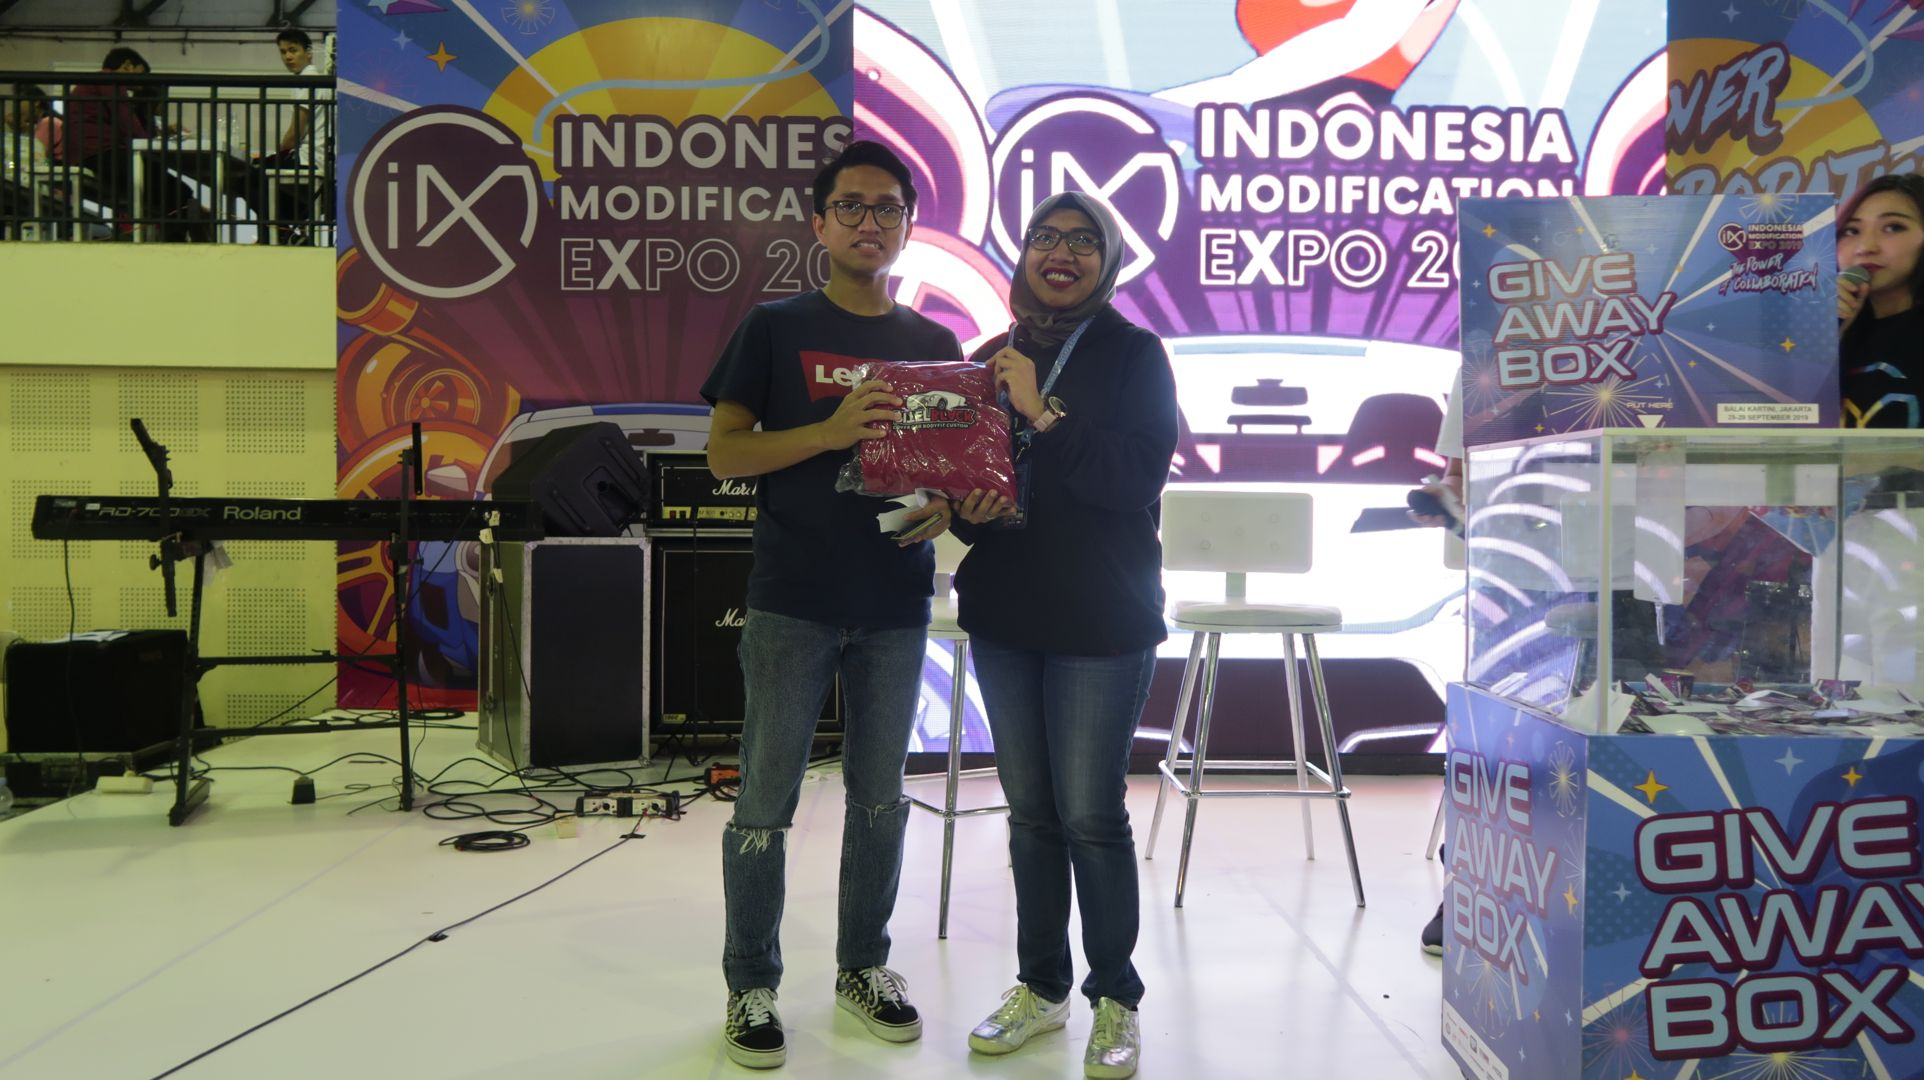 Imx - Indonesia modification expo giveaway 2019 (20)